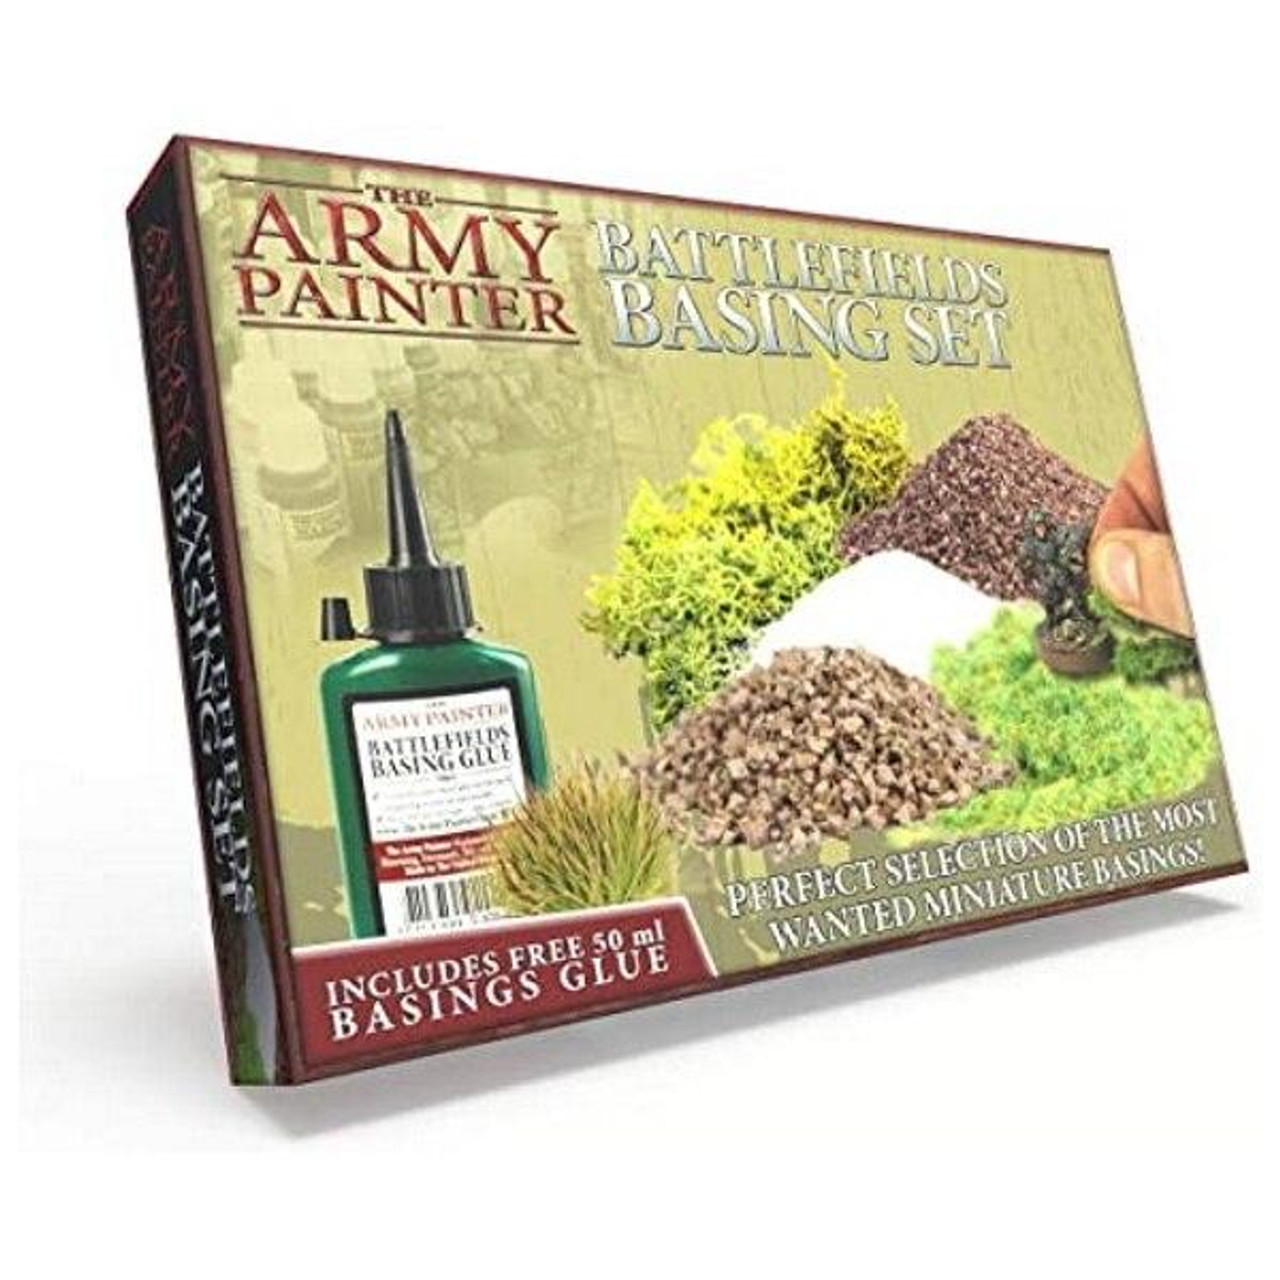 The Army Painter The Army Painter - Battlefields Basing Set